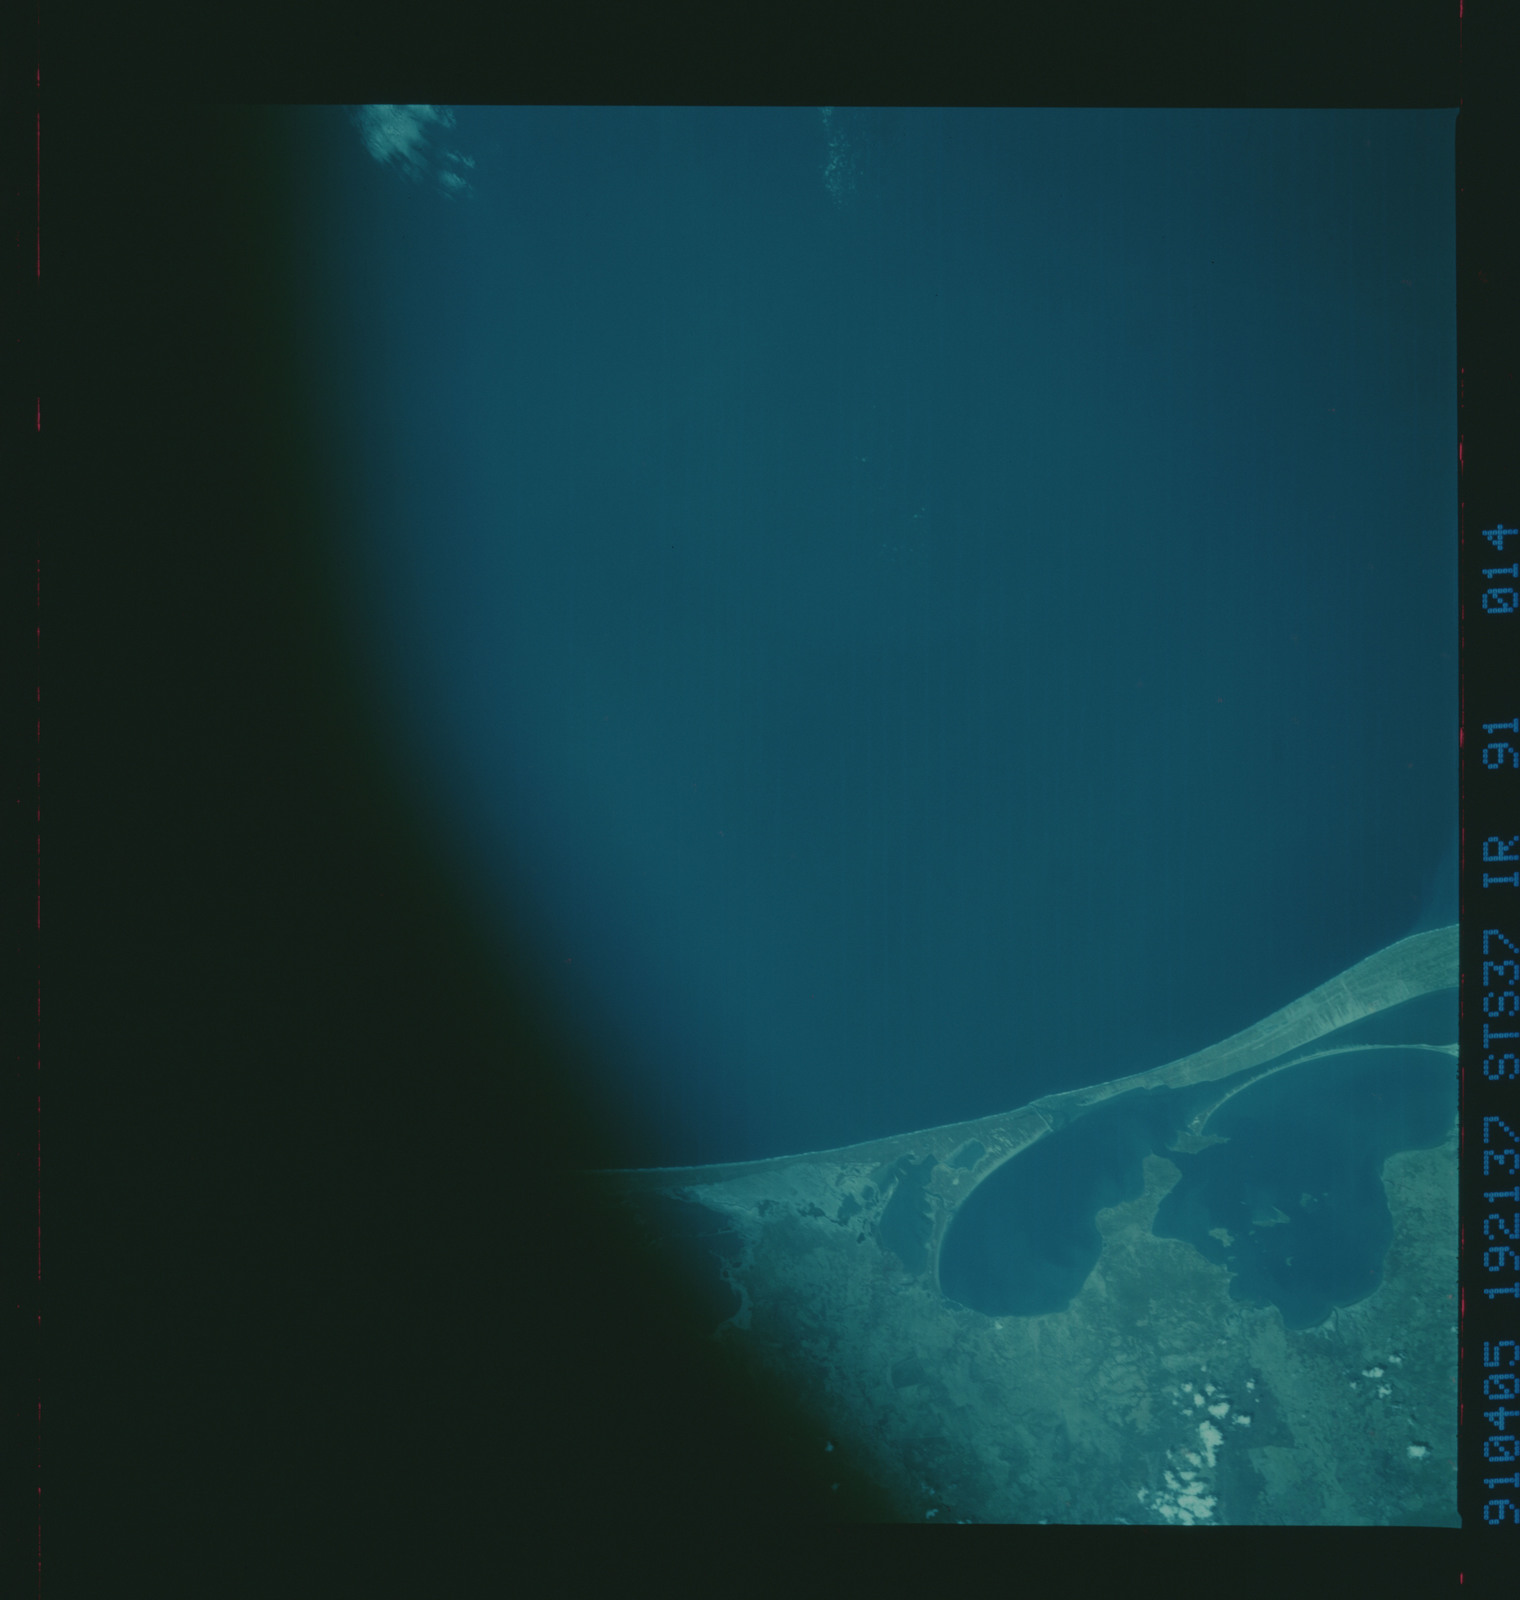 S37-91-014 - STS-037 - Infrared Earth observations taken from OV-104 during STS-37 mission